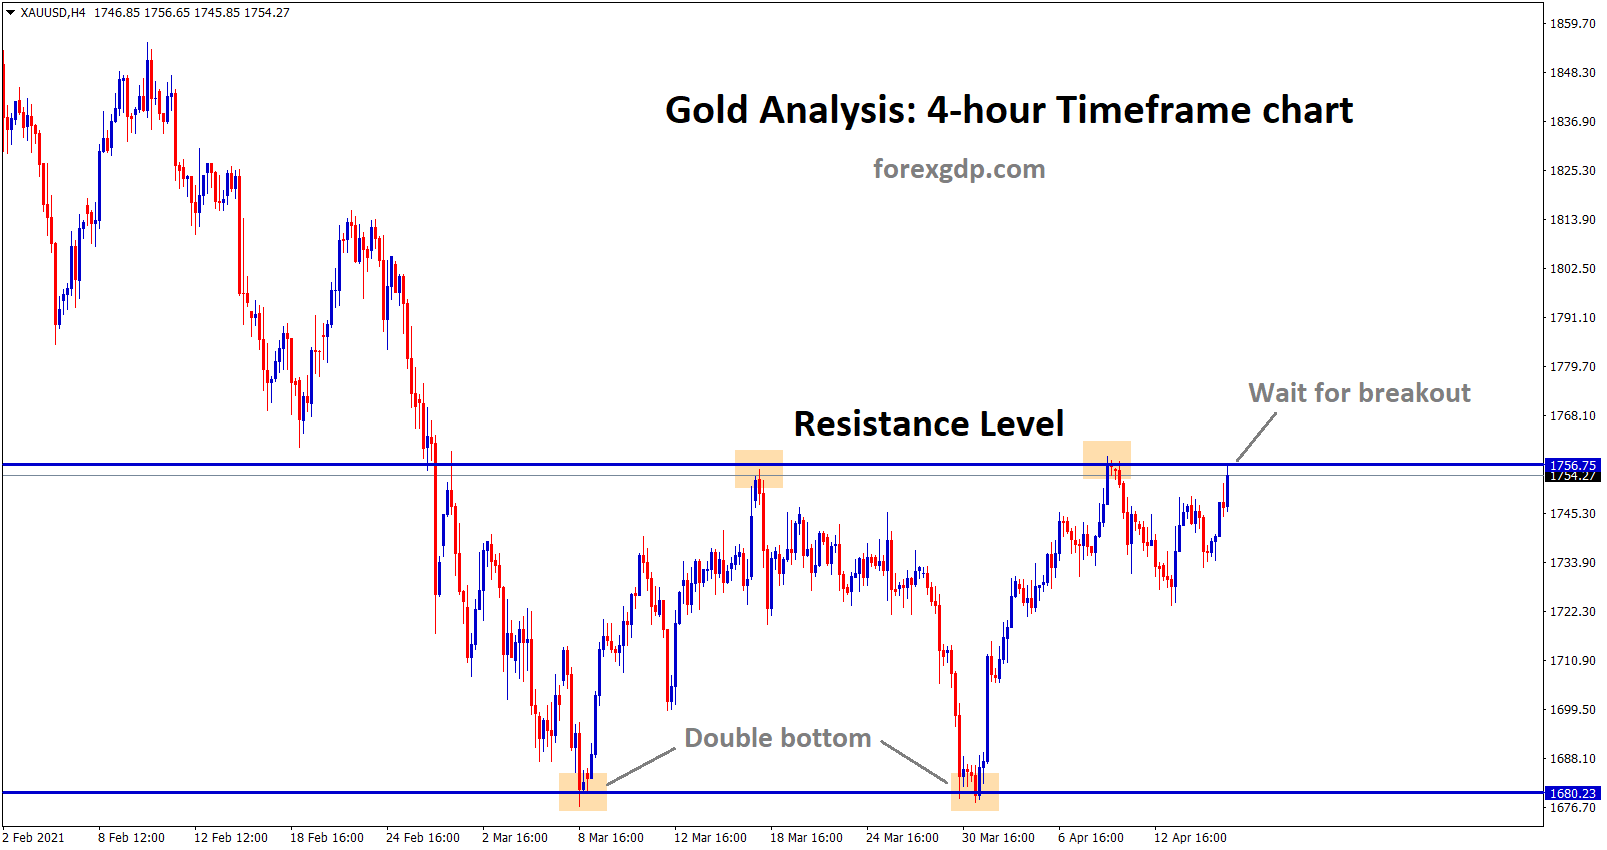 Gold going to break the resistance level in 4hr chart